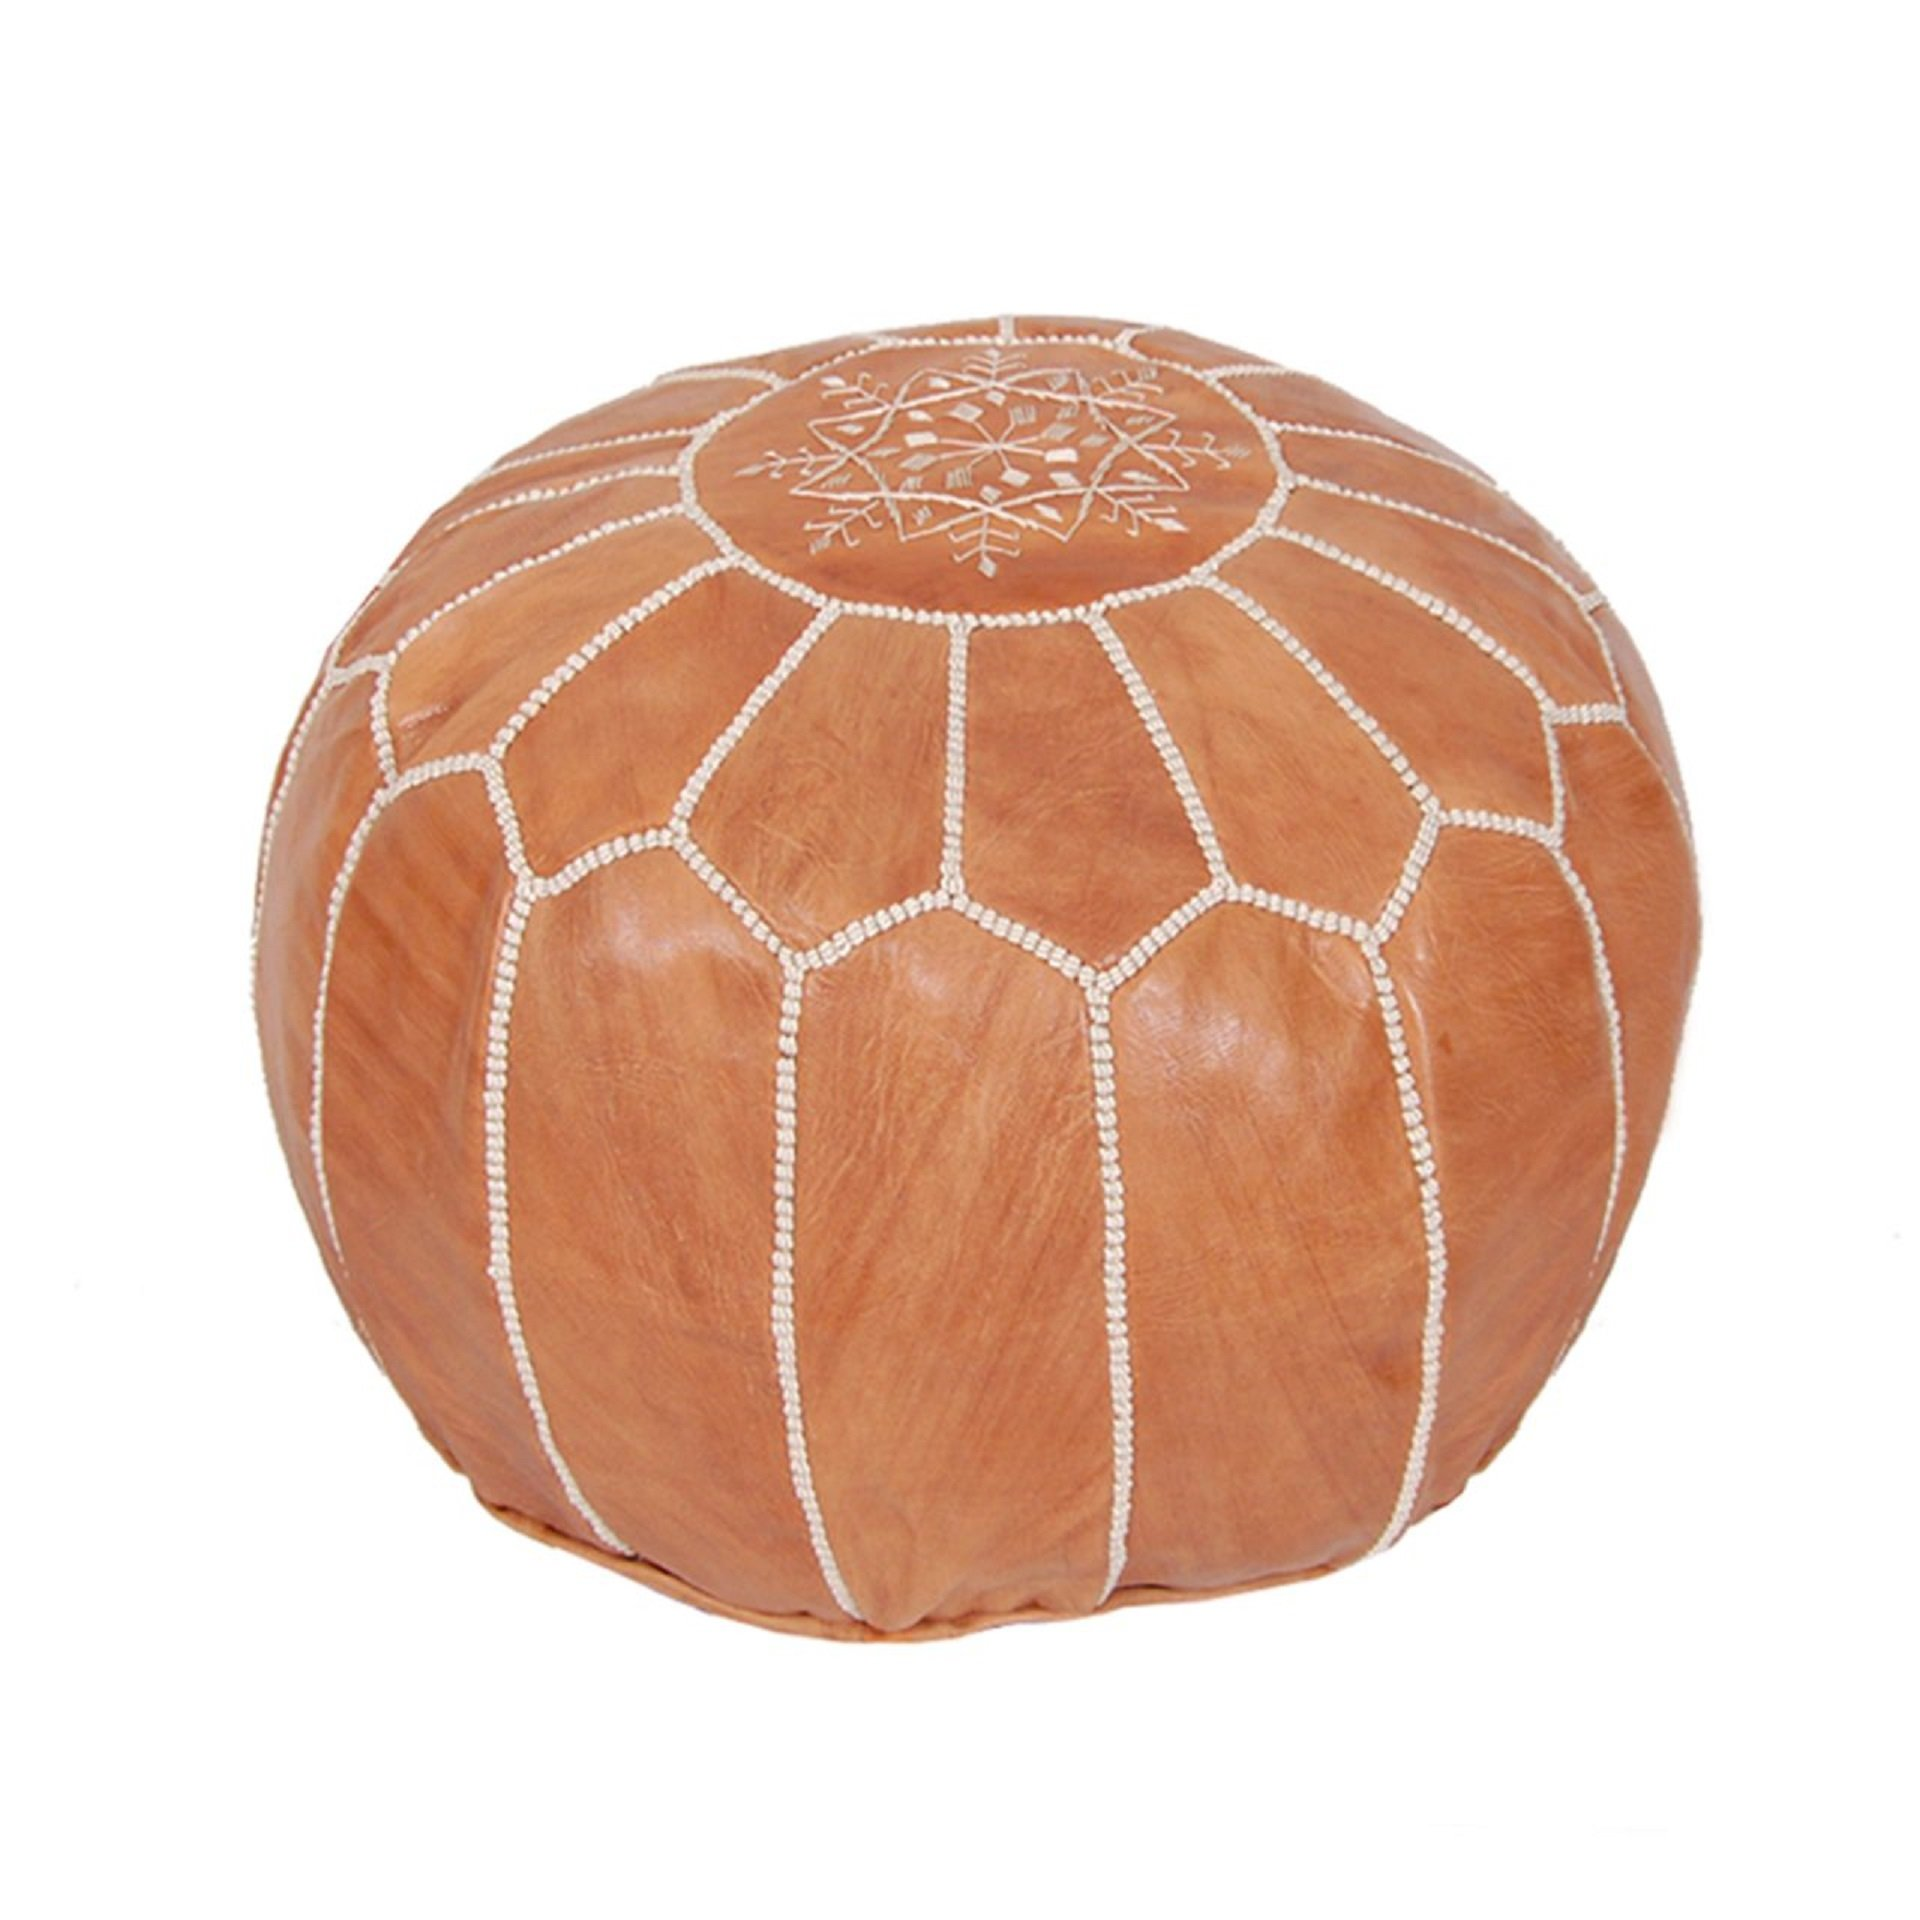 Moroccan Pouf Ottoman Footstool (Leather) Genuine Hand-Stitched Seating | Living Room, Bedroom, Sitting Area | Exclusive Designs (Tan)